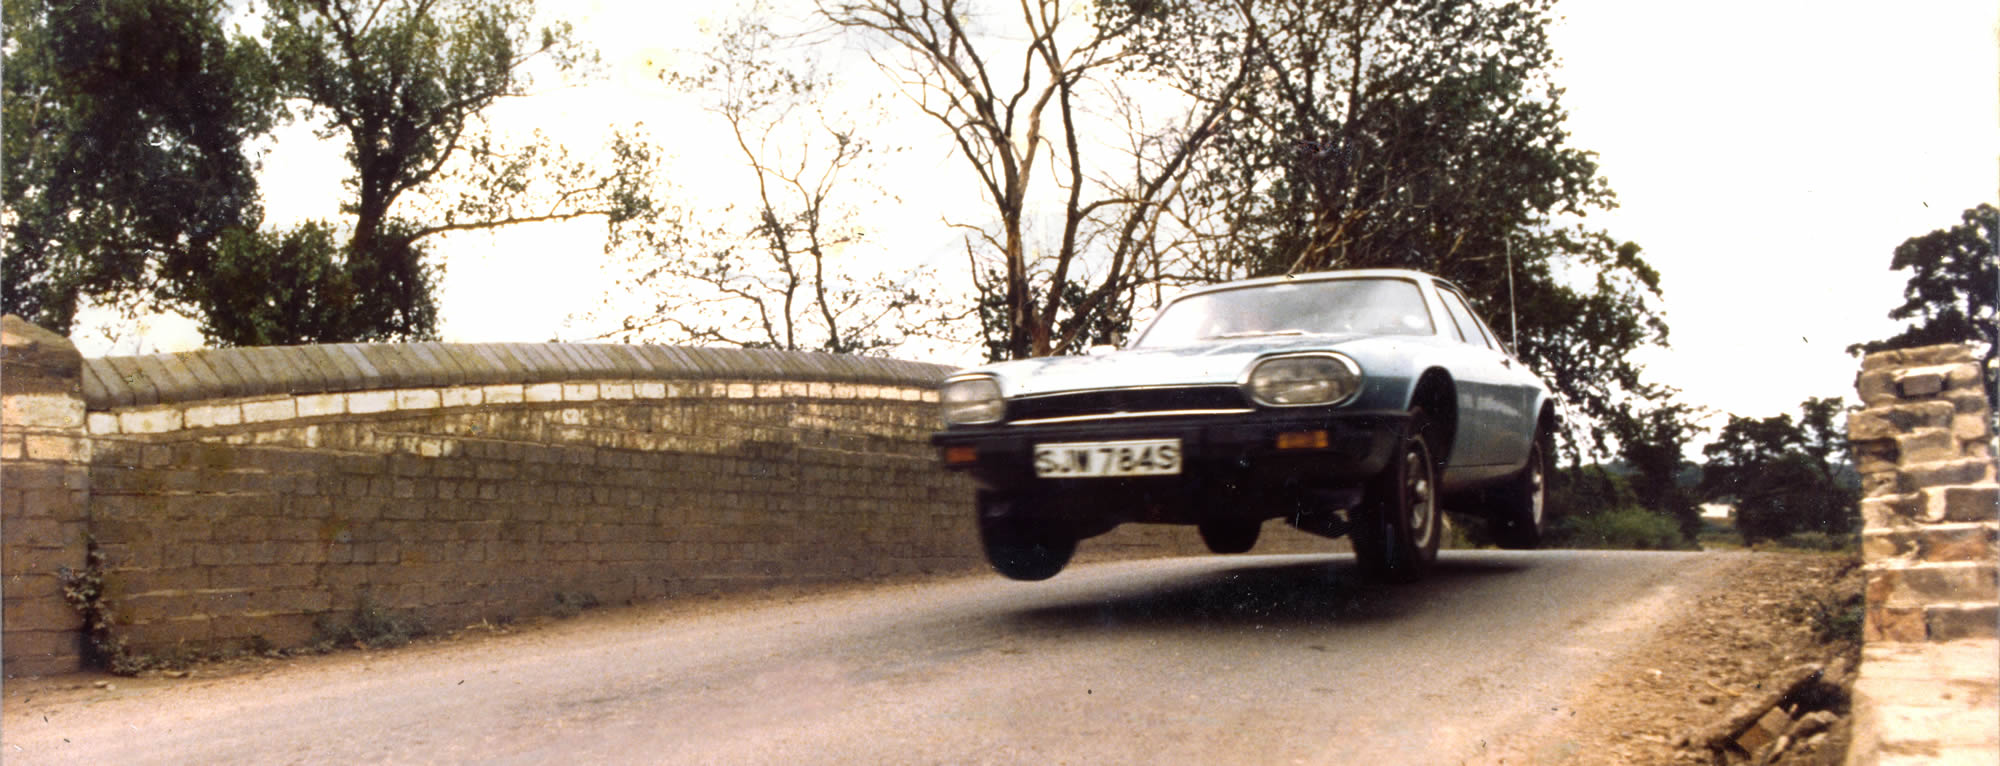 Leaping XJ-S 1978